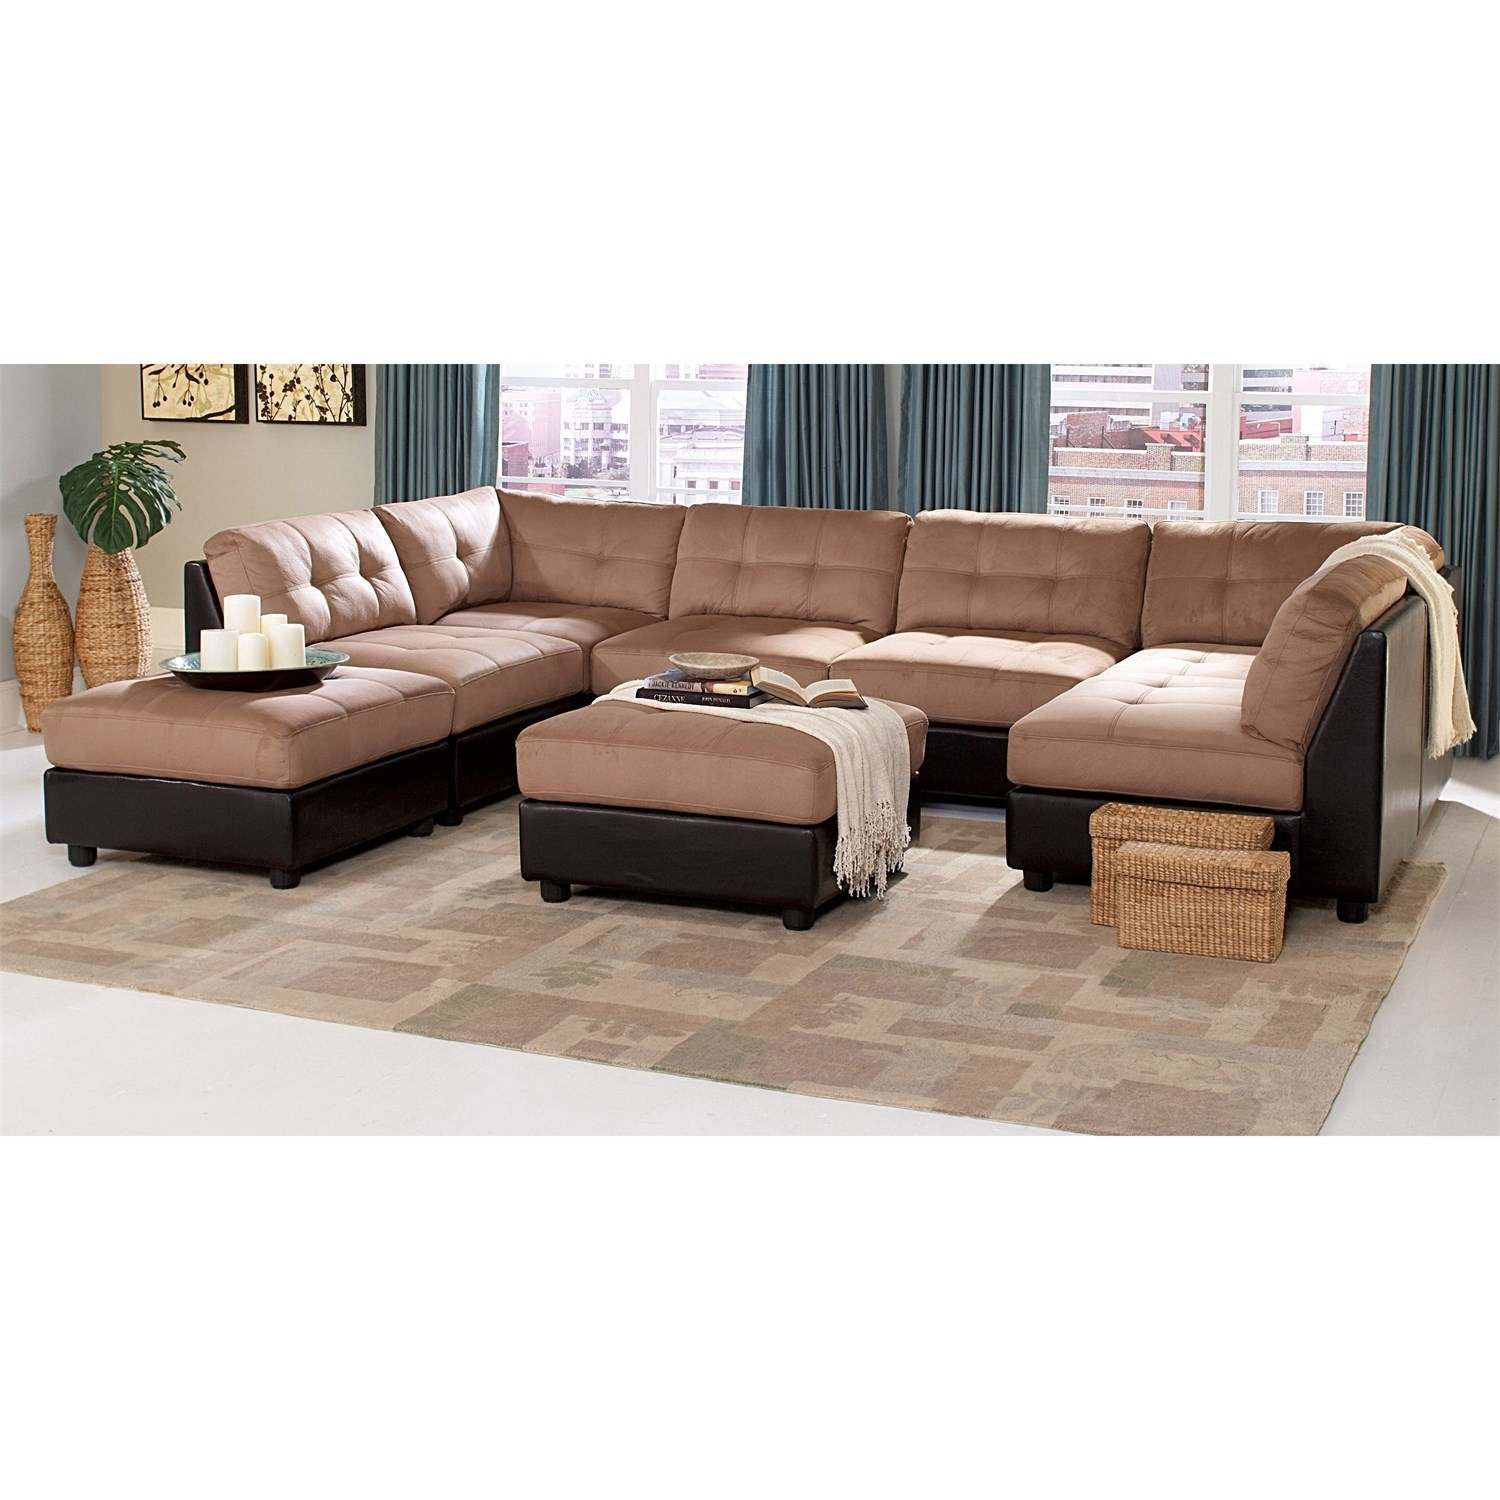 Coaster Furniture 551001/4 551002/2 Claude 6 Piece Brown Sectional Intended For Macon Ga Sectional Sofas (View 8 of 10)